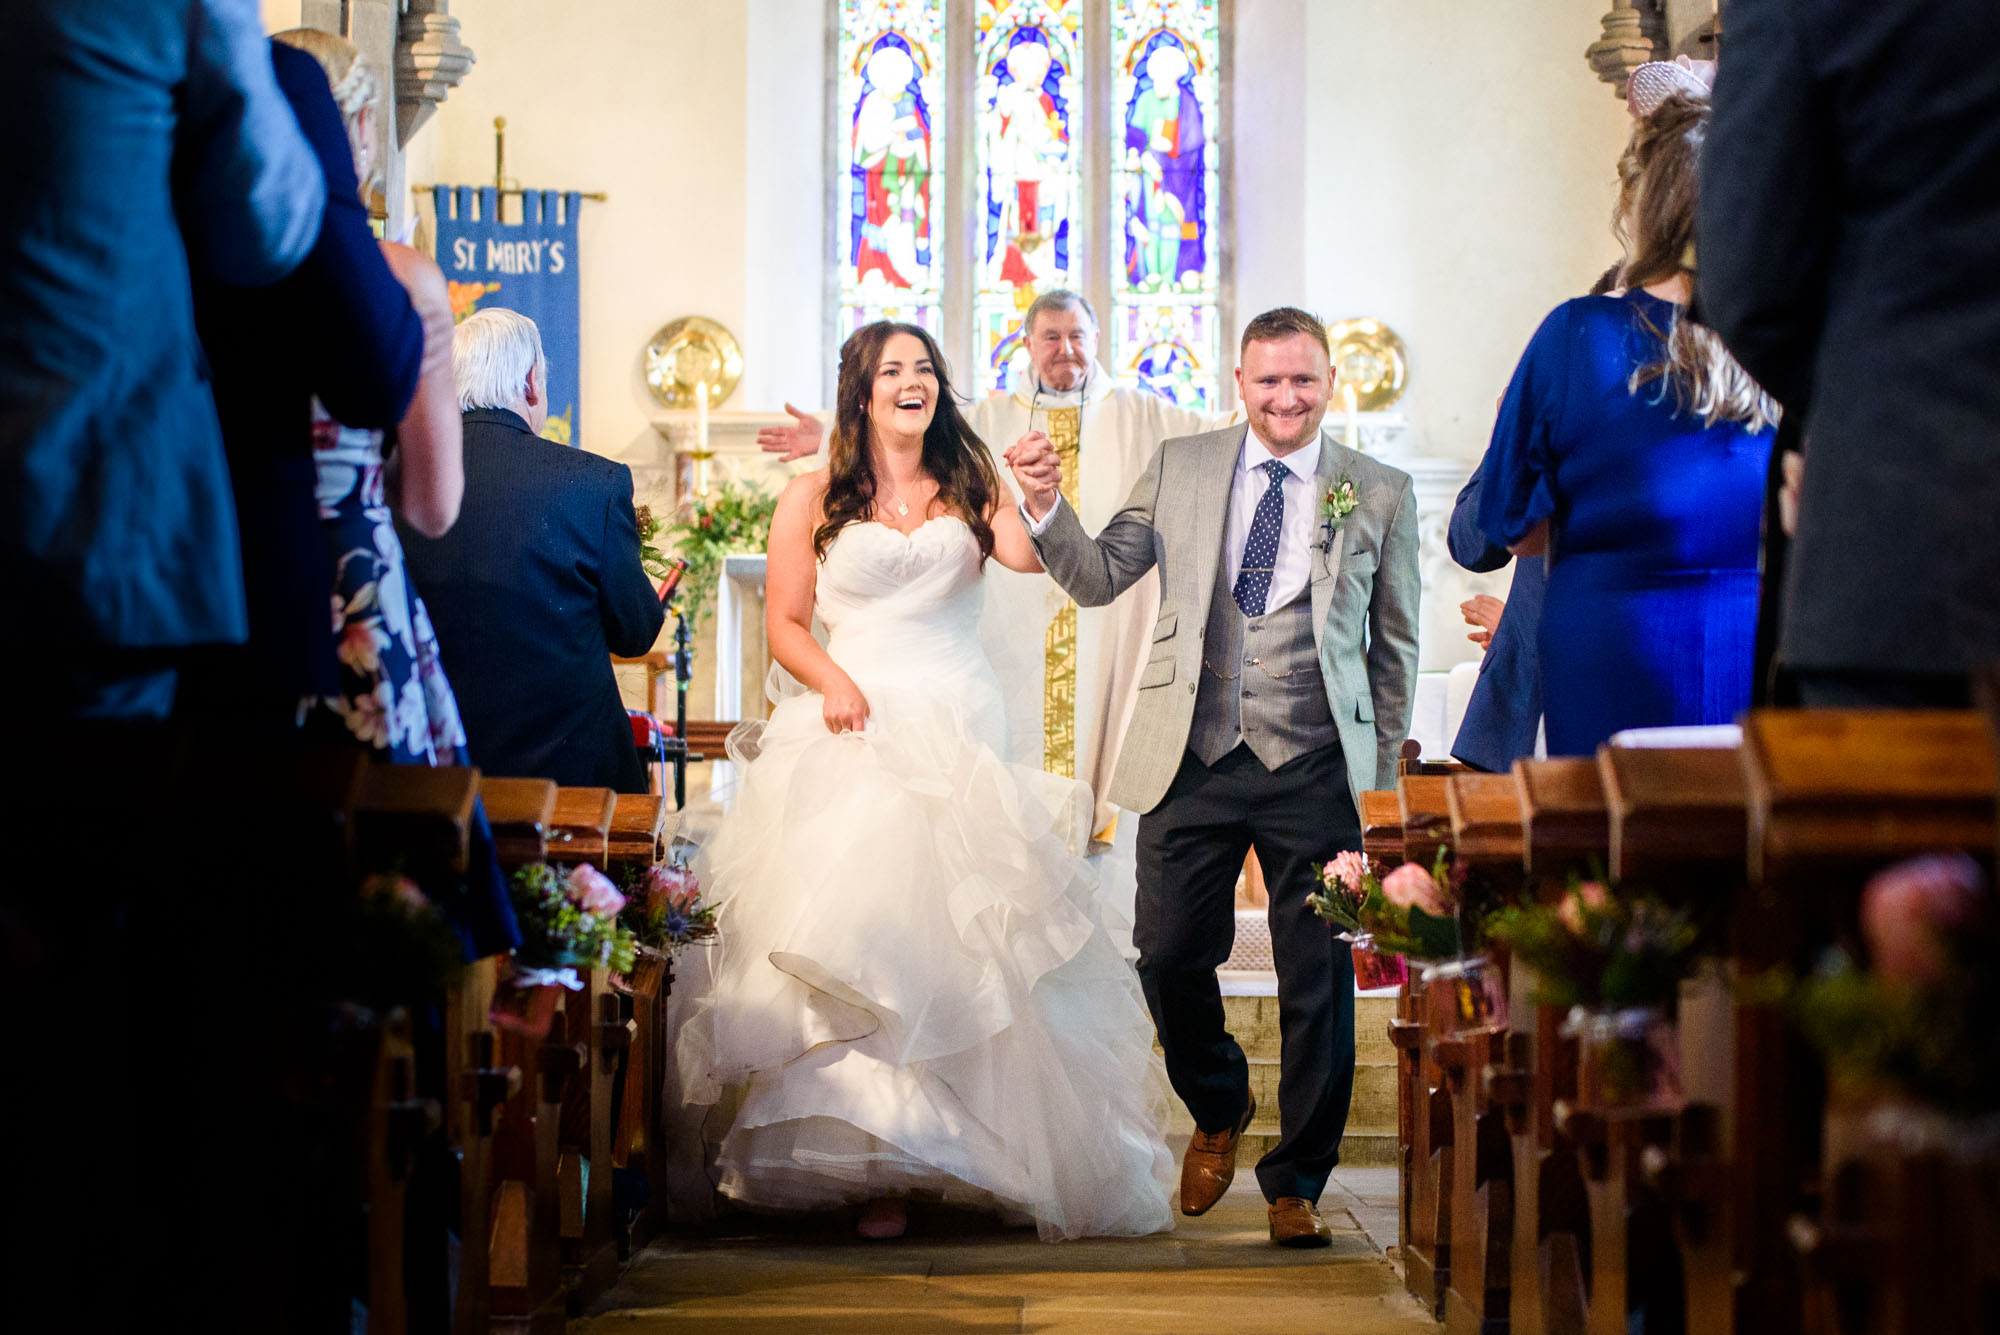 bride walking down the isle at st mary's church in Llanfairpwllgwyngyll